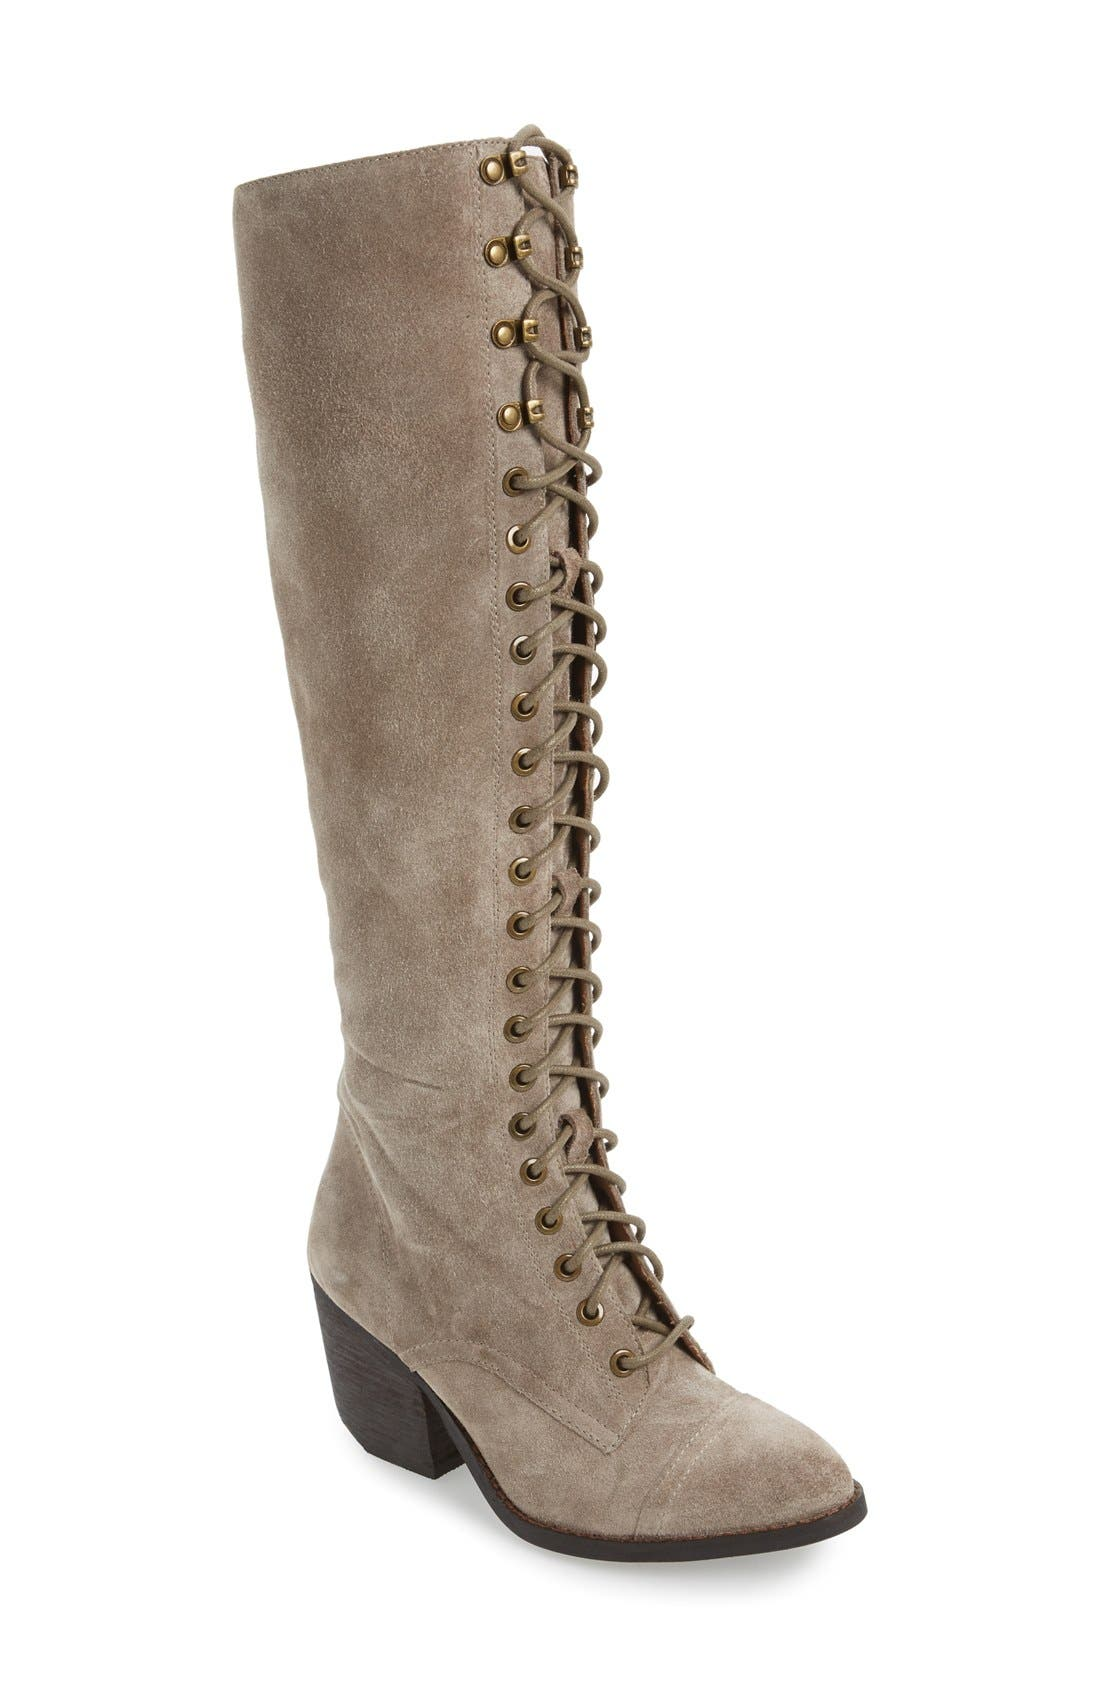 Alternate Image 1 Selected - Jeffrey Campbell 'Kandace' Lace-Up Tall Boot (Women)